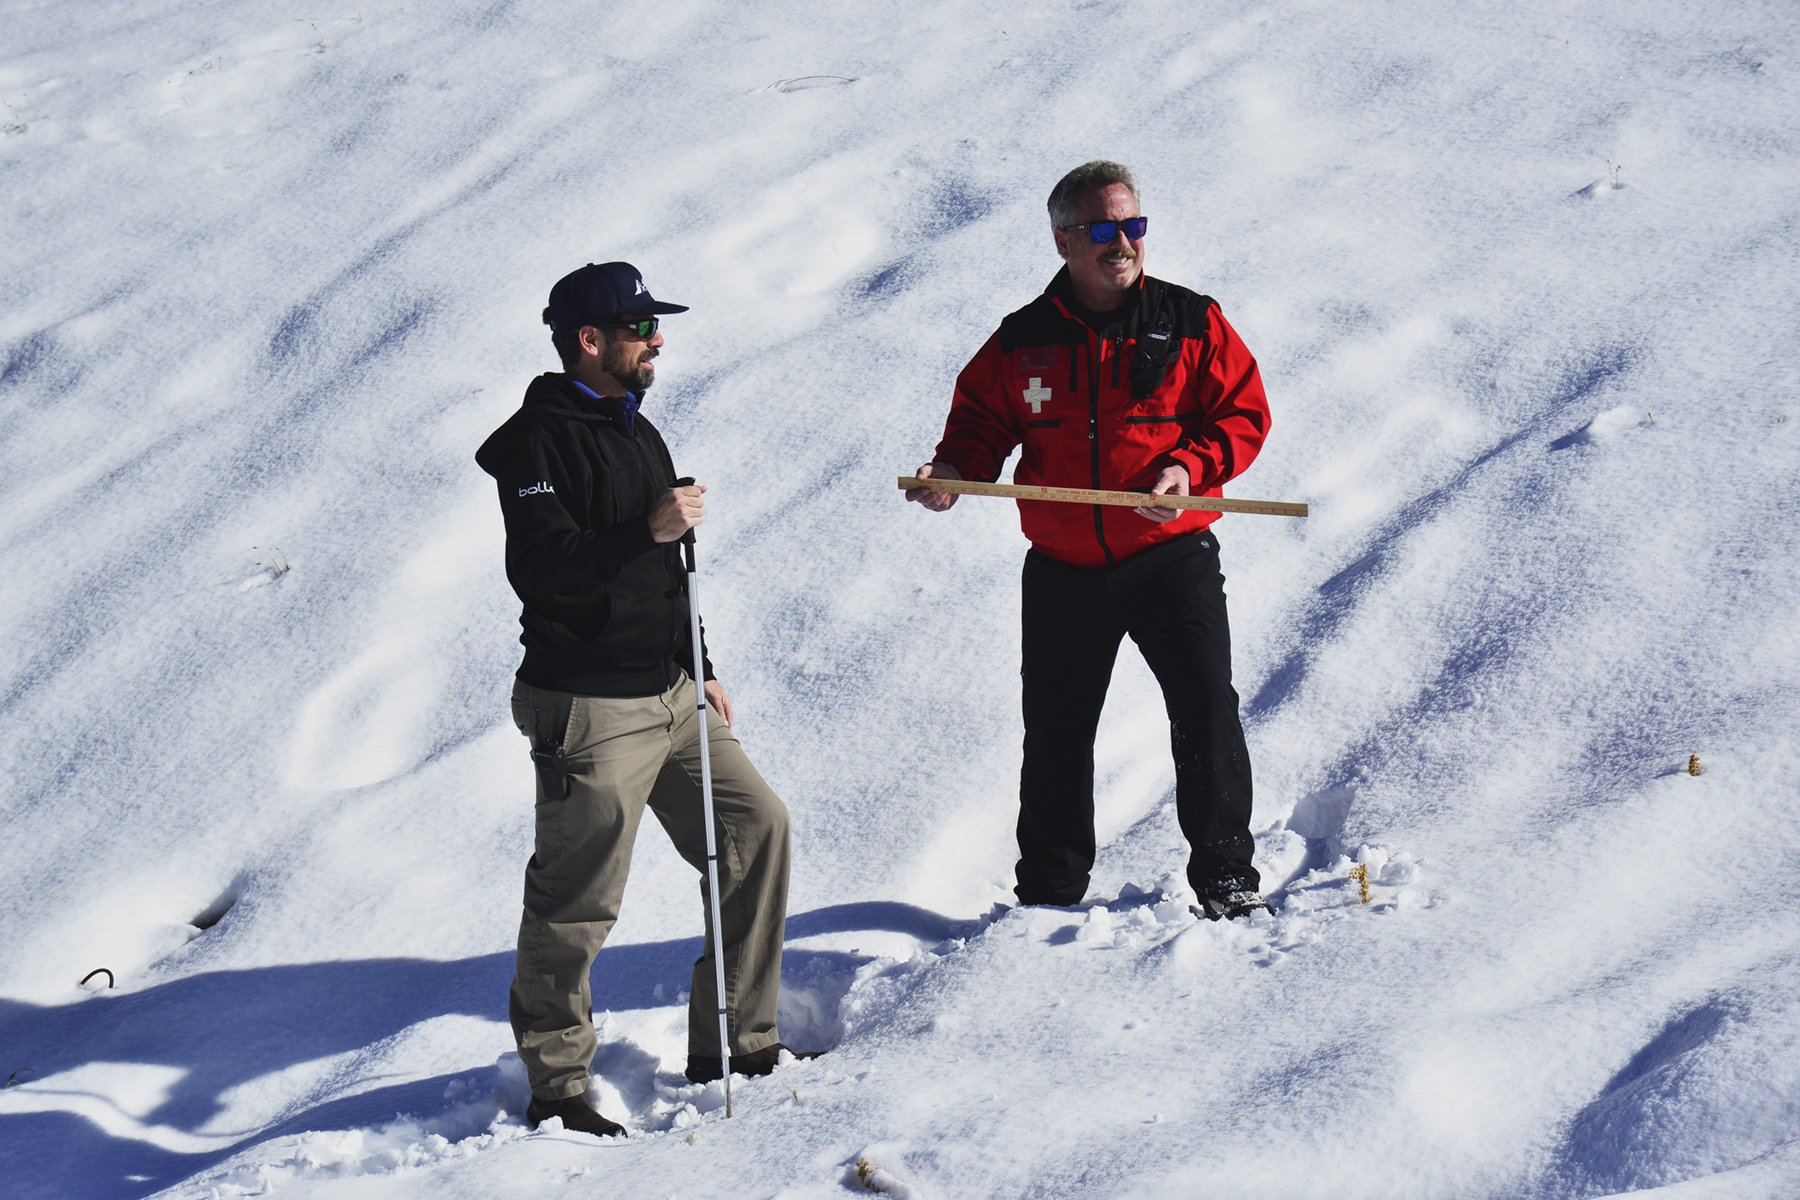 Two Snow Valley employees measuring fresh snowfall